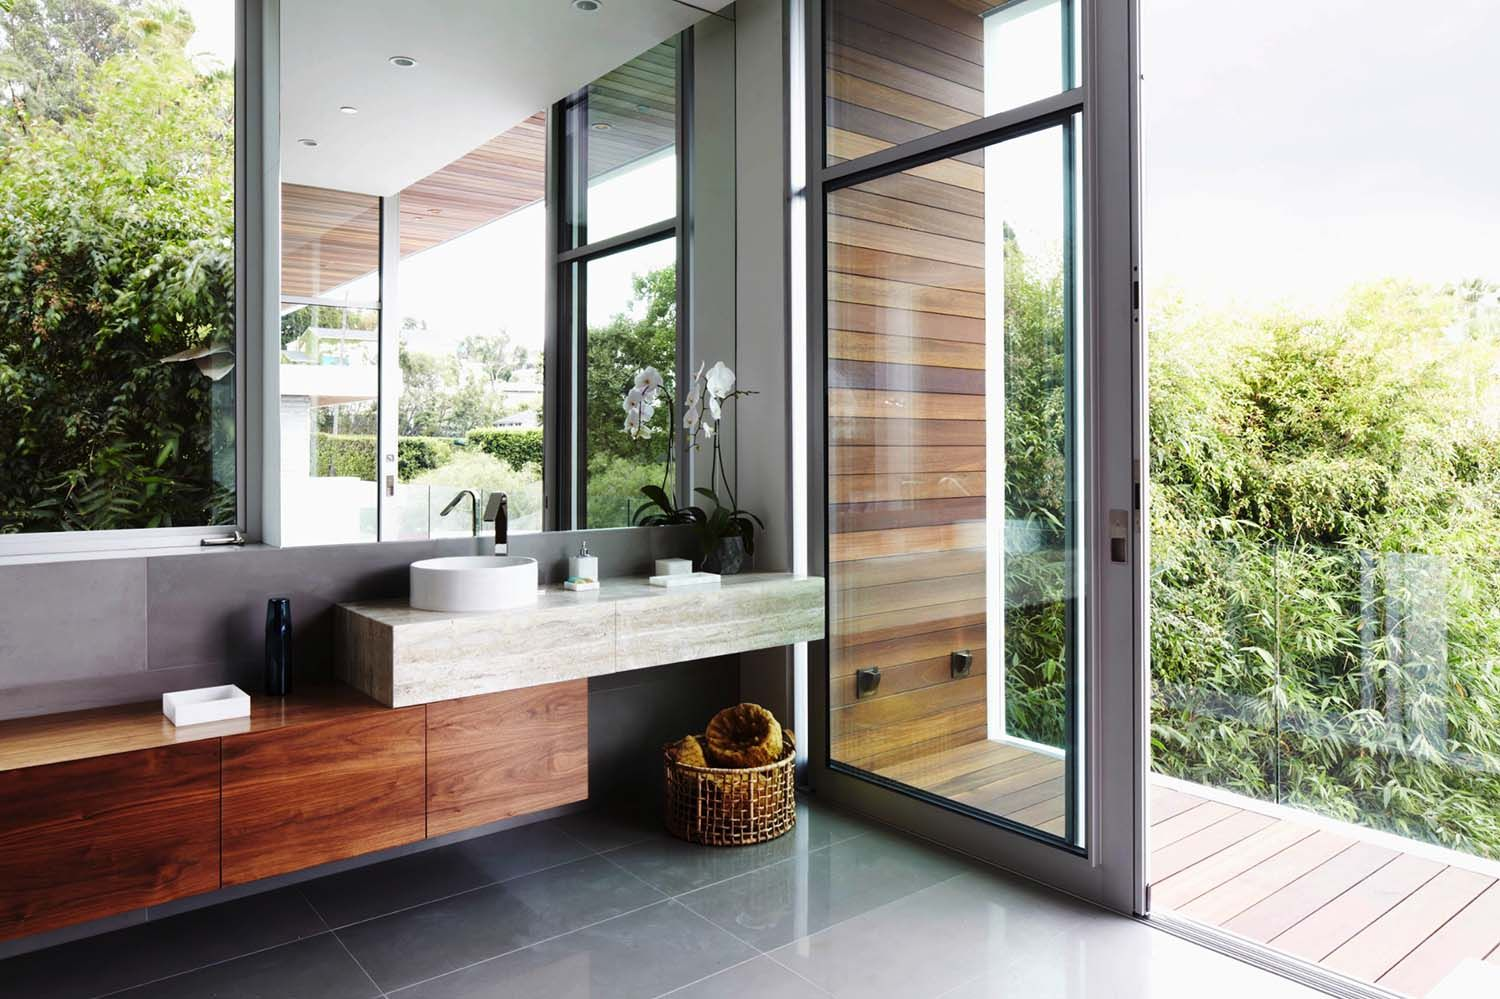 Interiors Firm Erinn V Design Group Has Wowed Us With The Spectacular Job Of This Fabulous Modern Estate In Los Angeles California